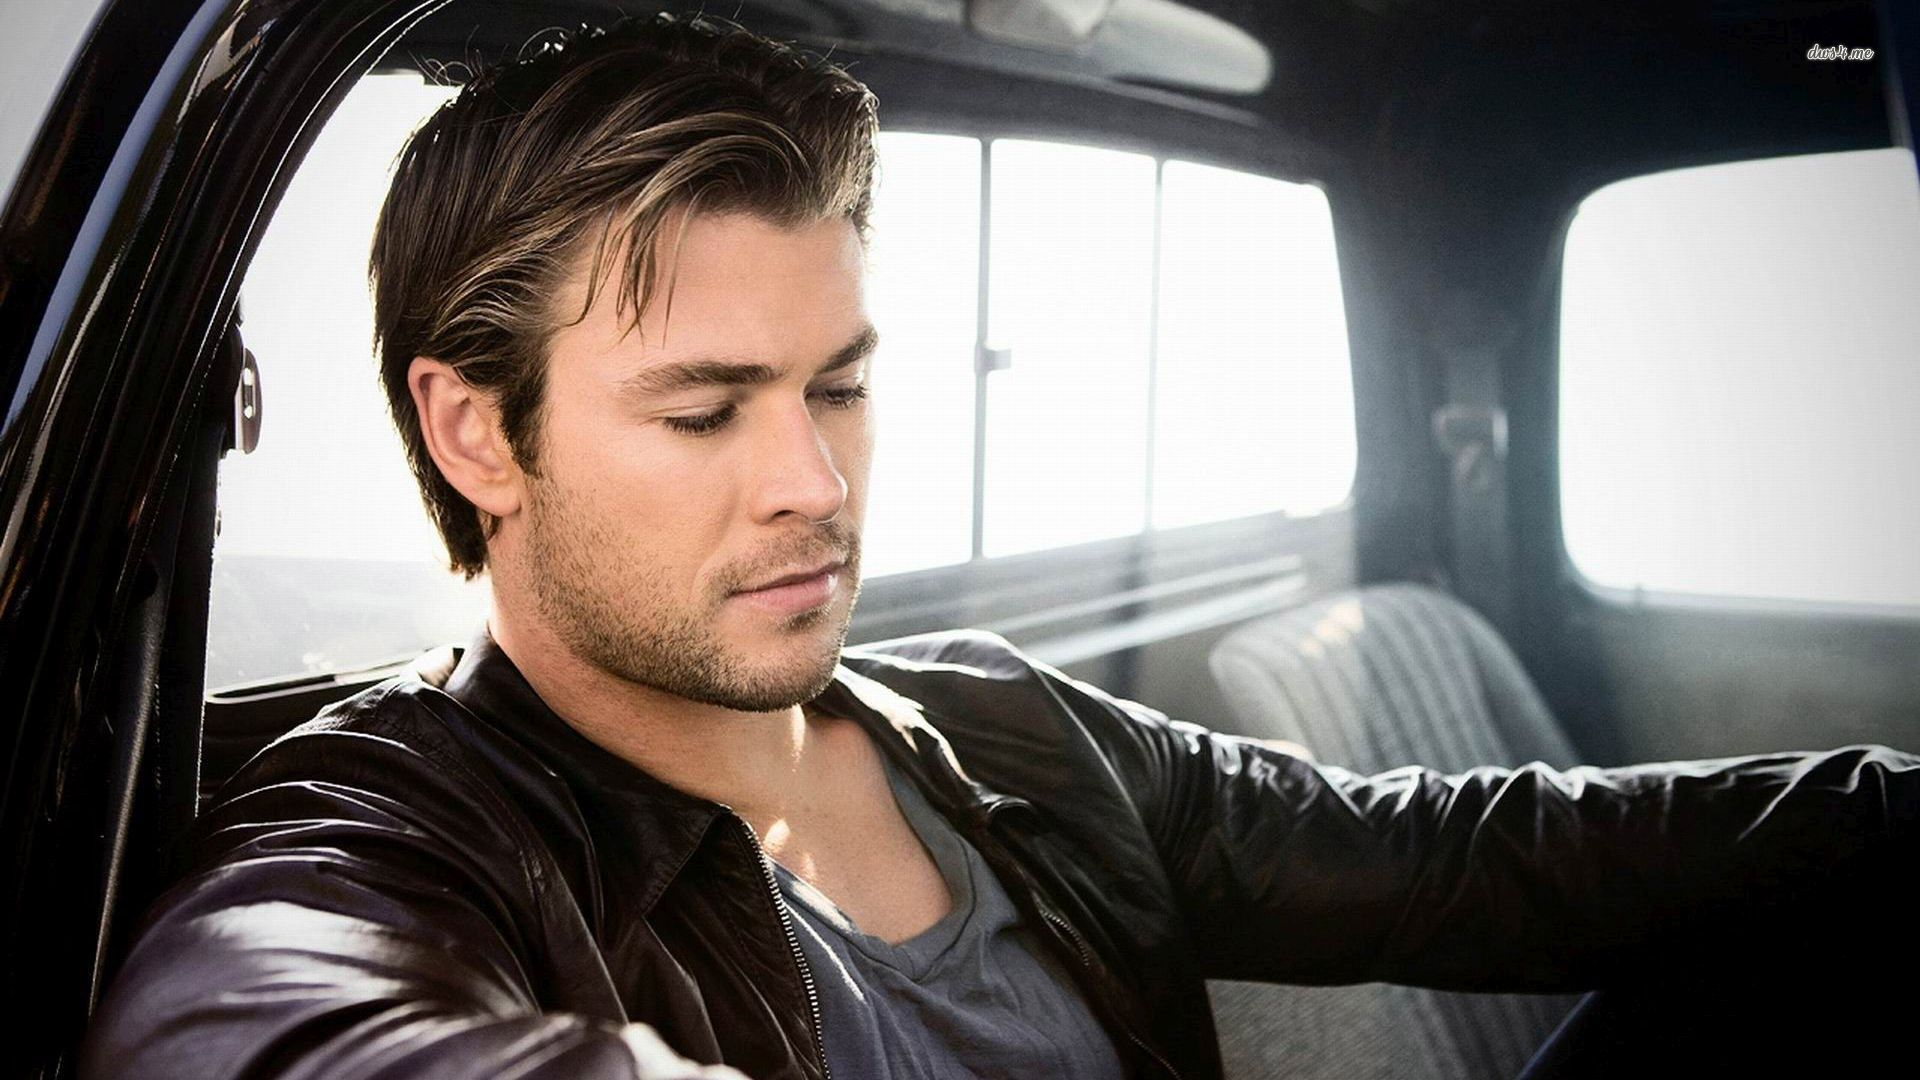 chris-hemsworth-04426.jpg (1920×1080)